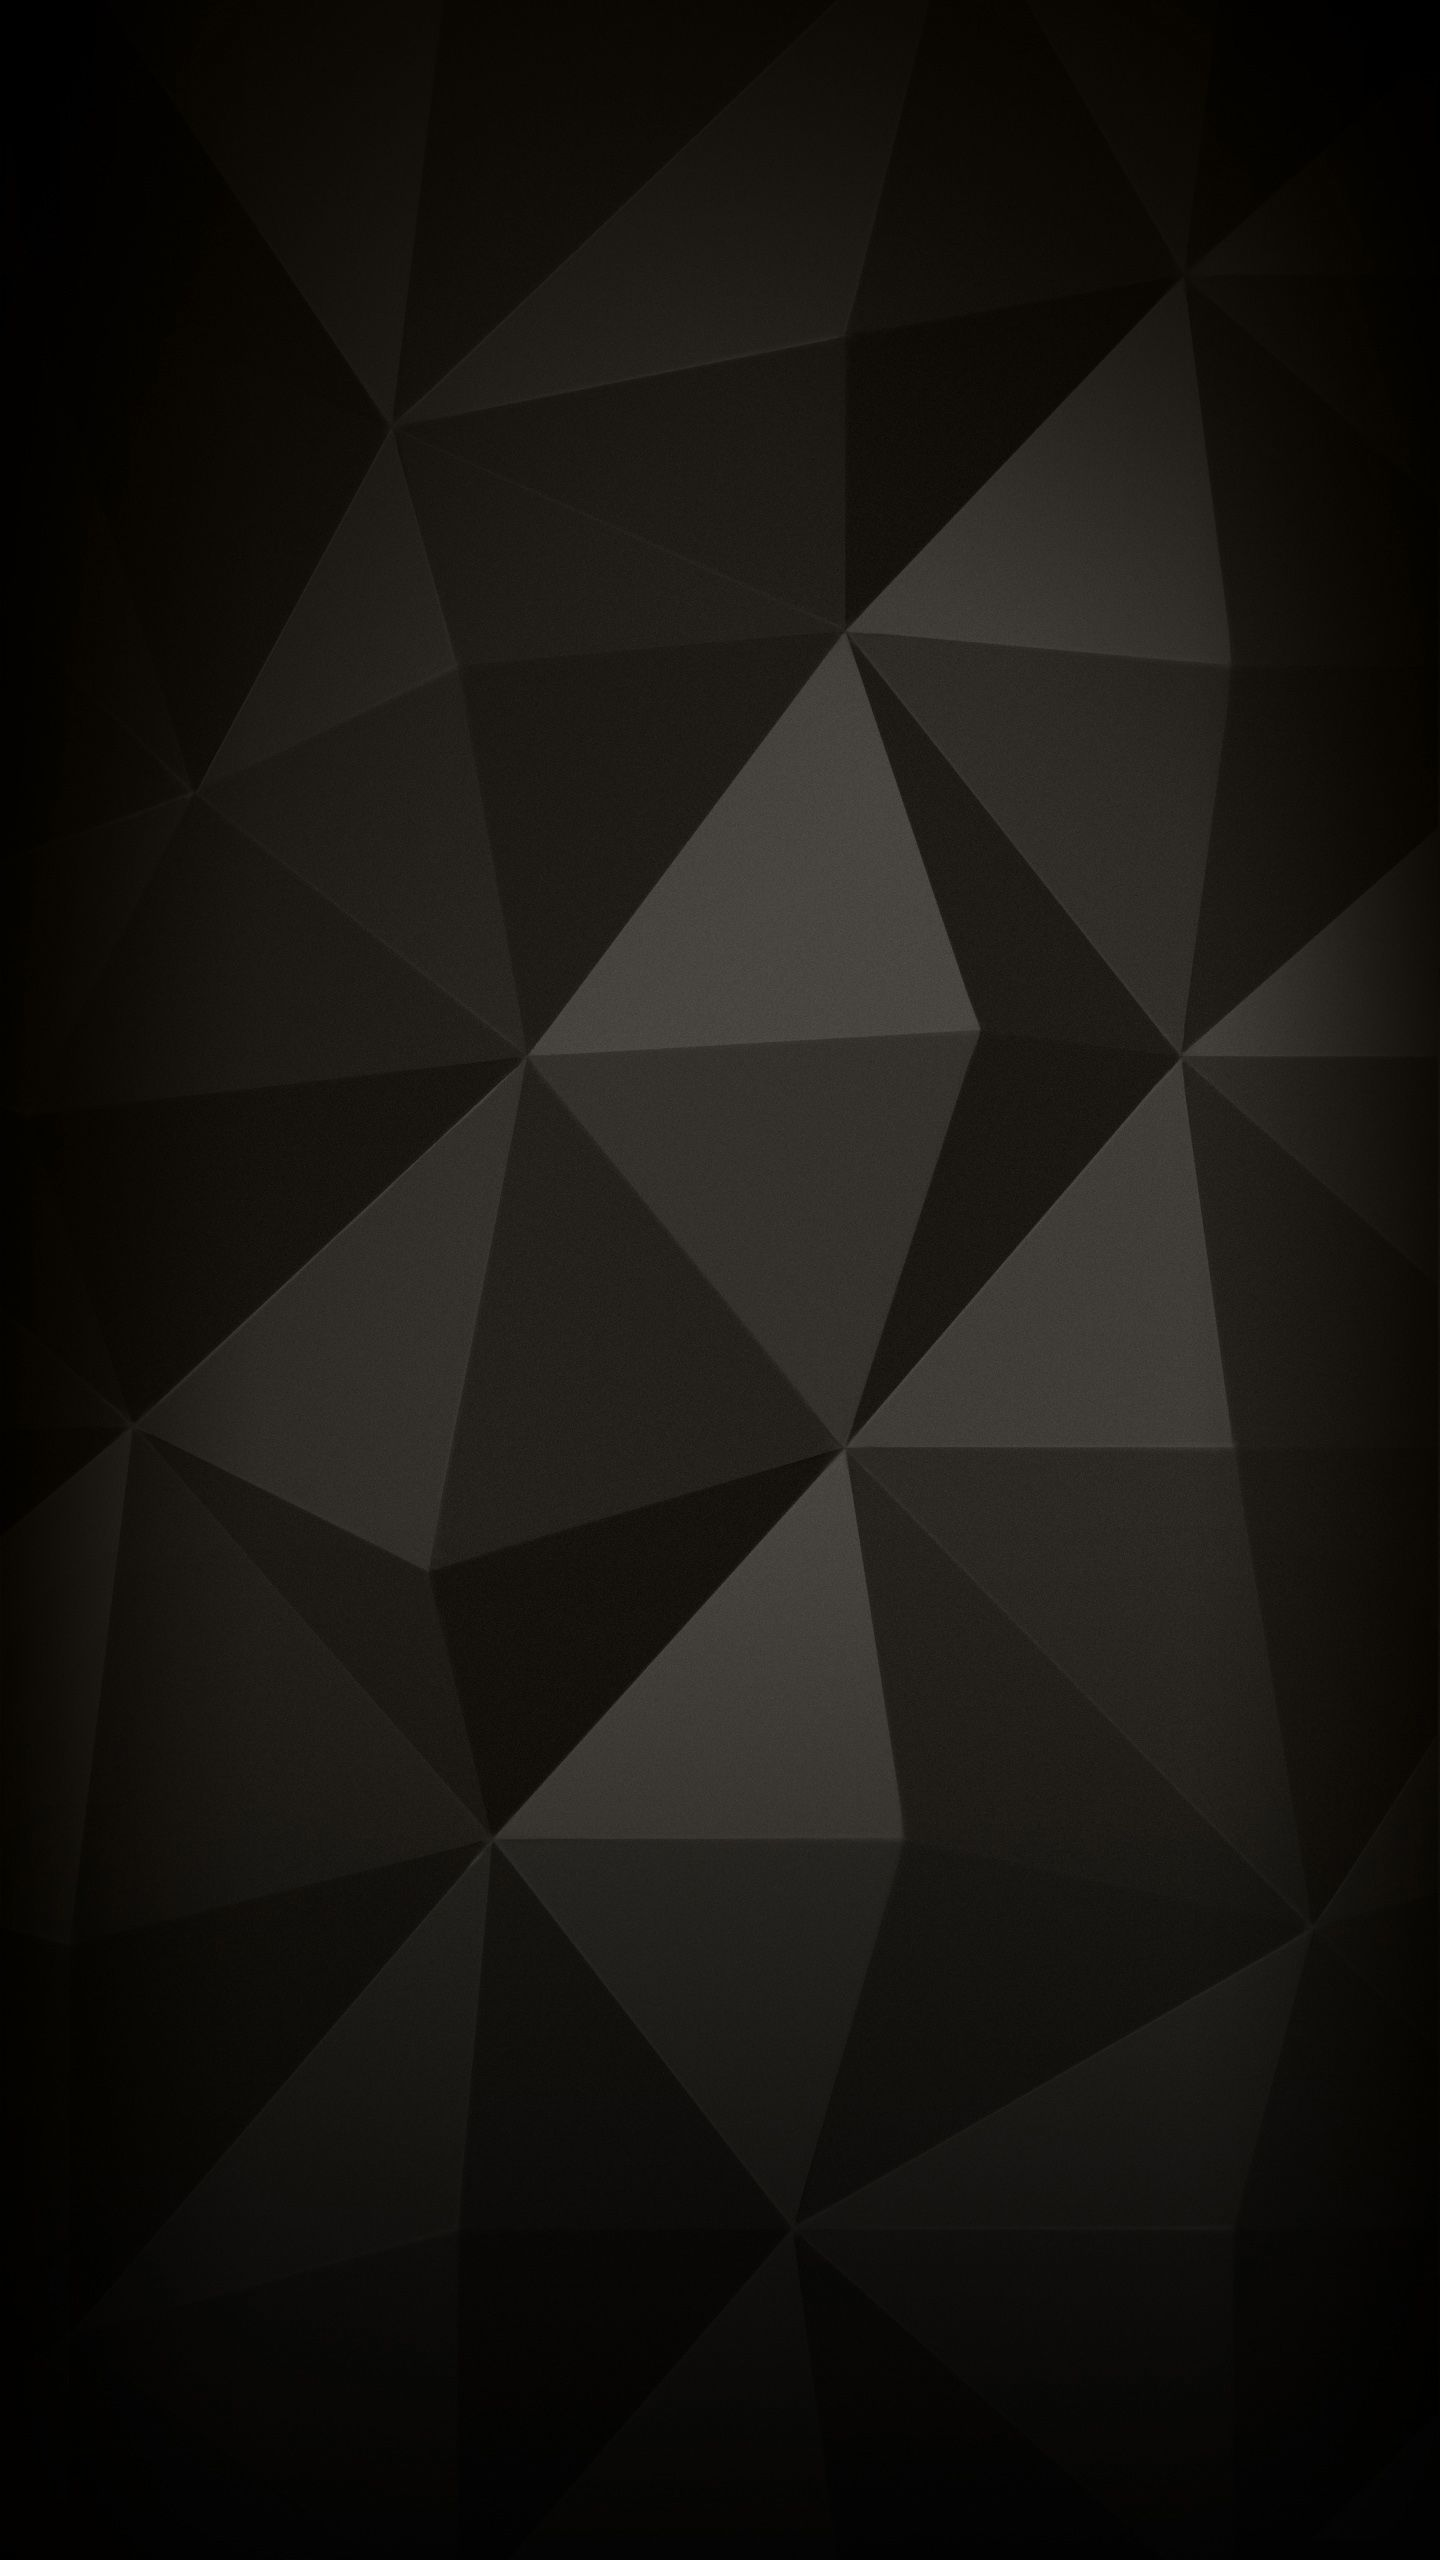 Black Abstract Mobile Phone Wallpaper Media File